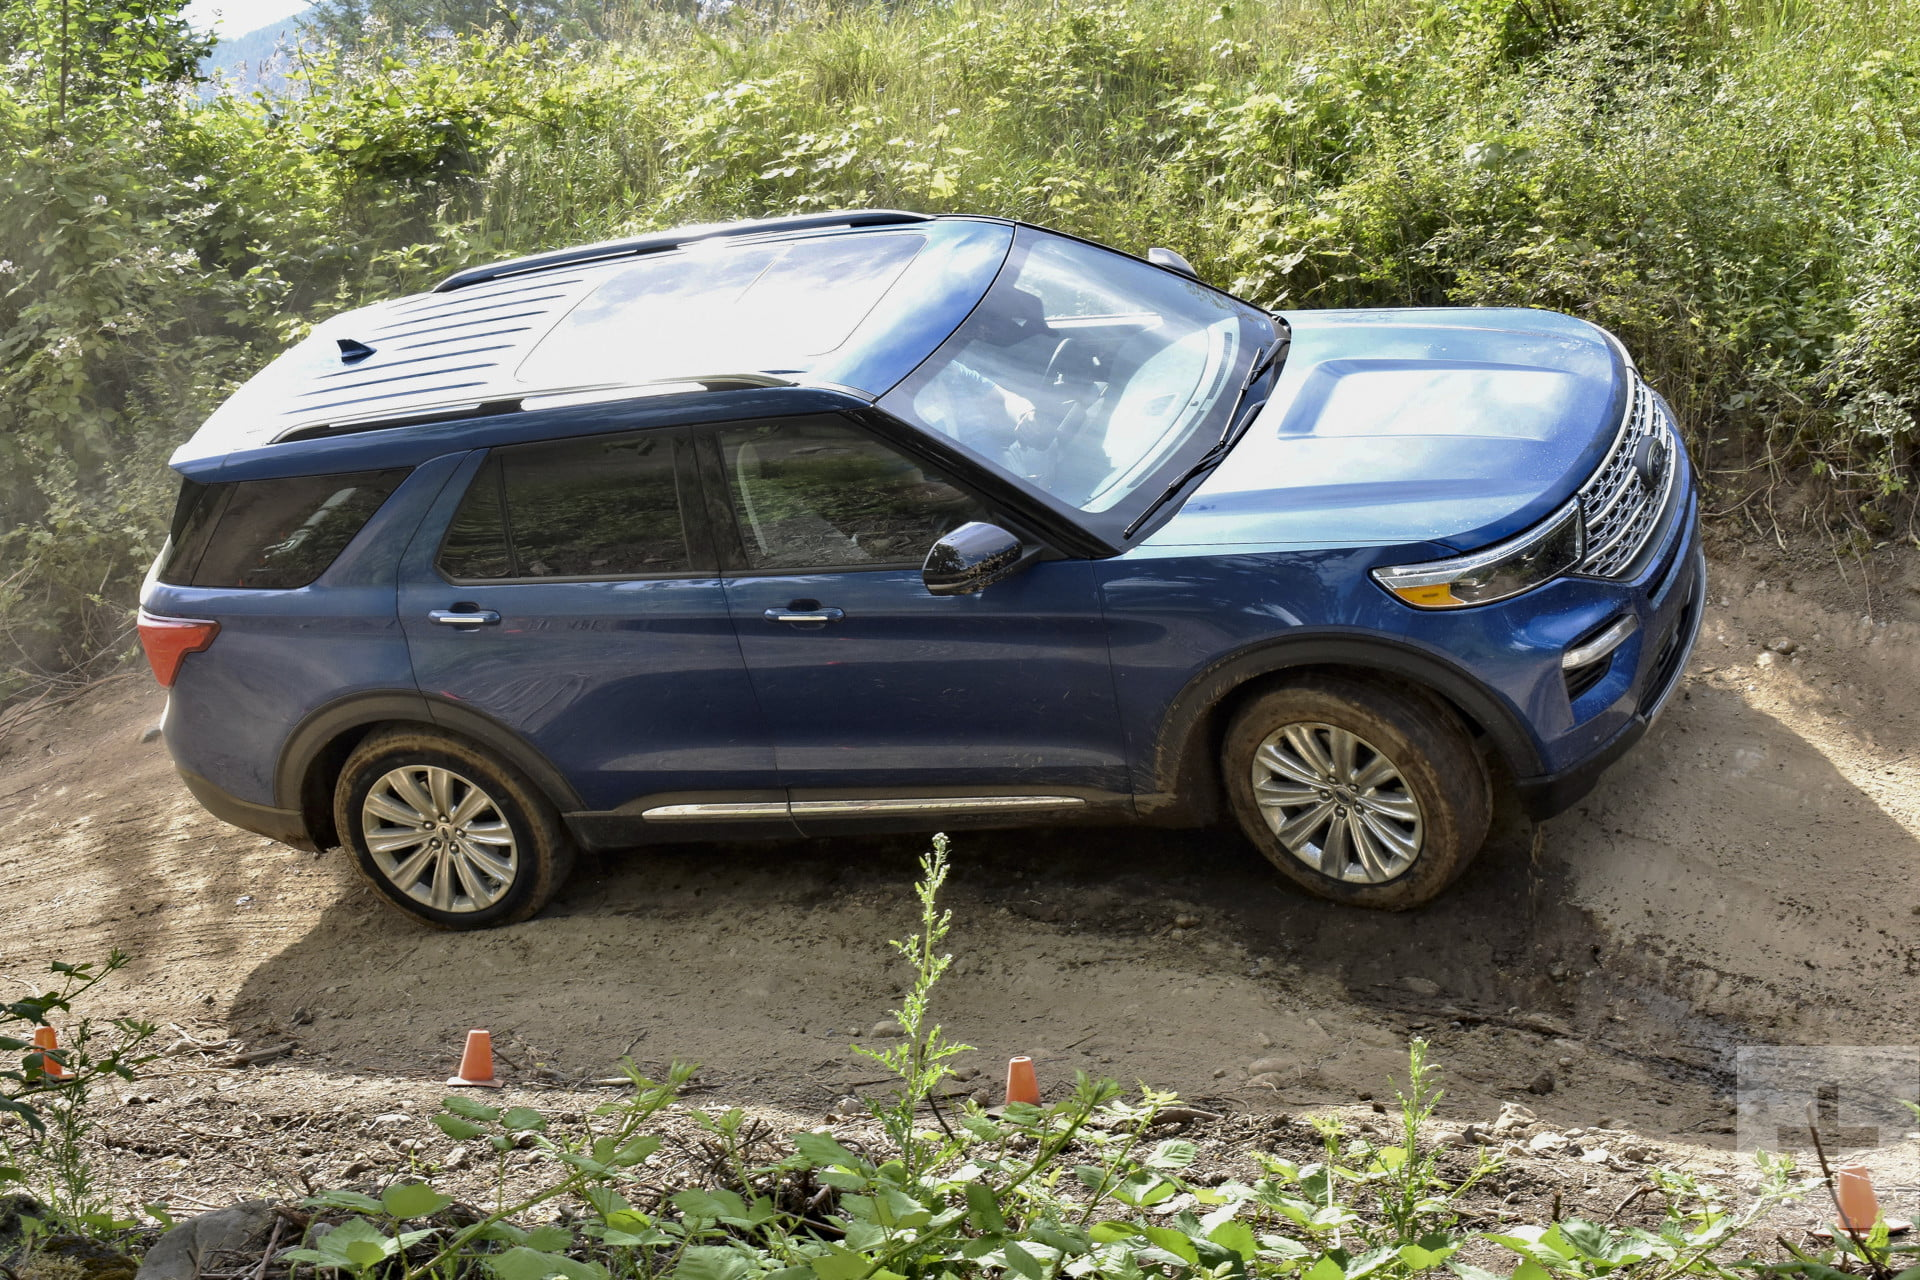 2020 Ford Explorer ST, Interior, Hybrid, Sport >> 2020 Ford Explorer First Drive Review Don T Judge A Book By Its